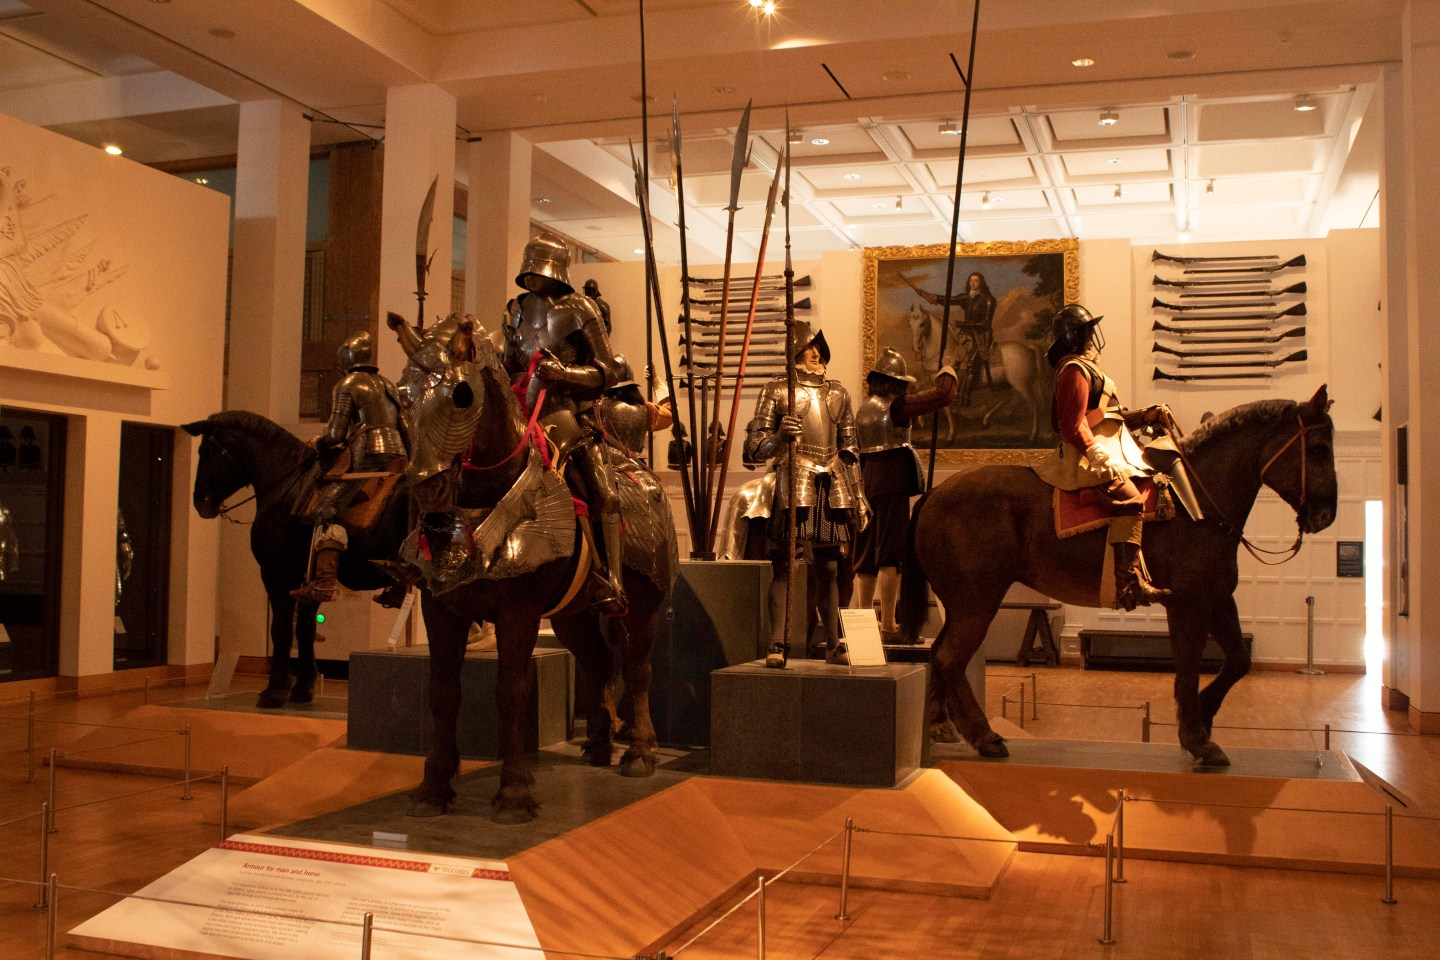 Horse armour and museum displays at Royal Armouries Museum in Leeds